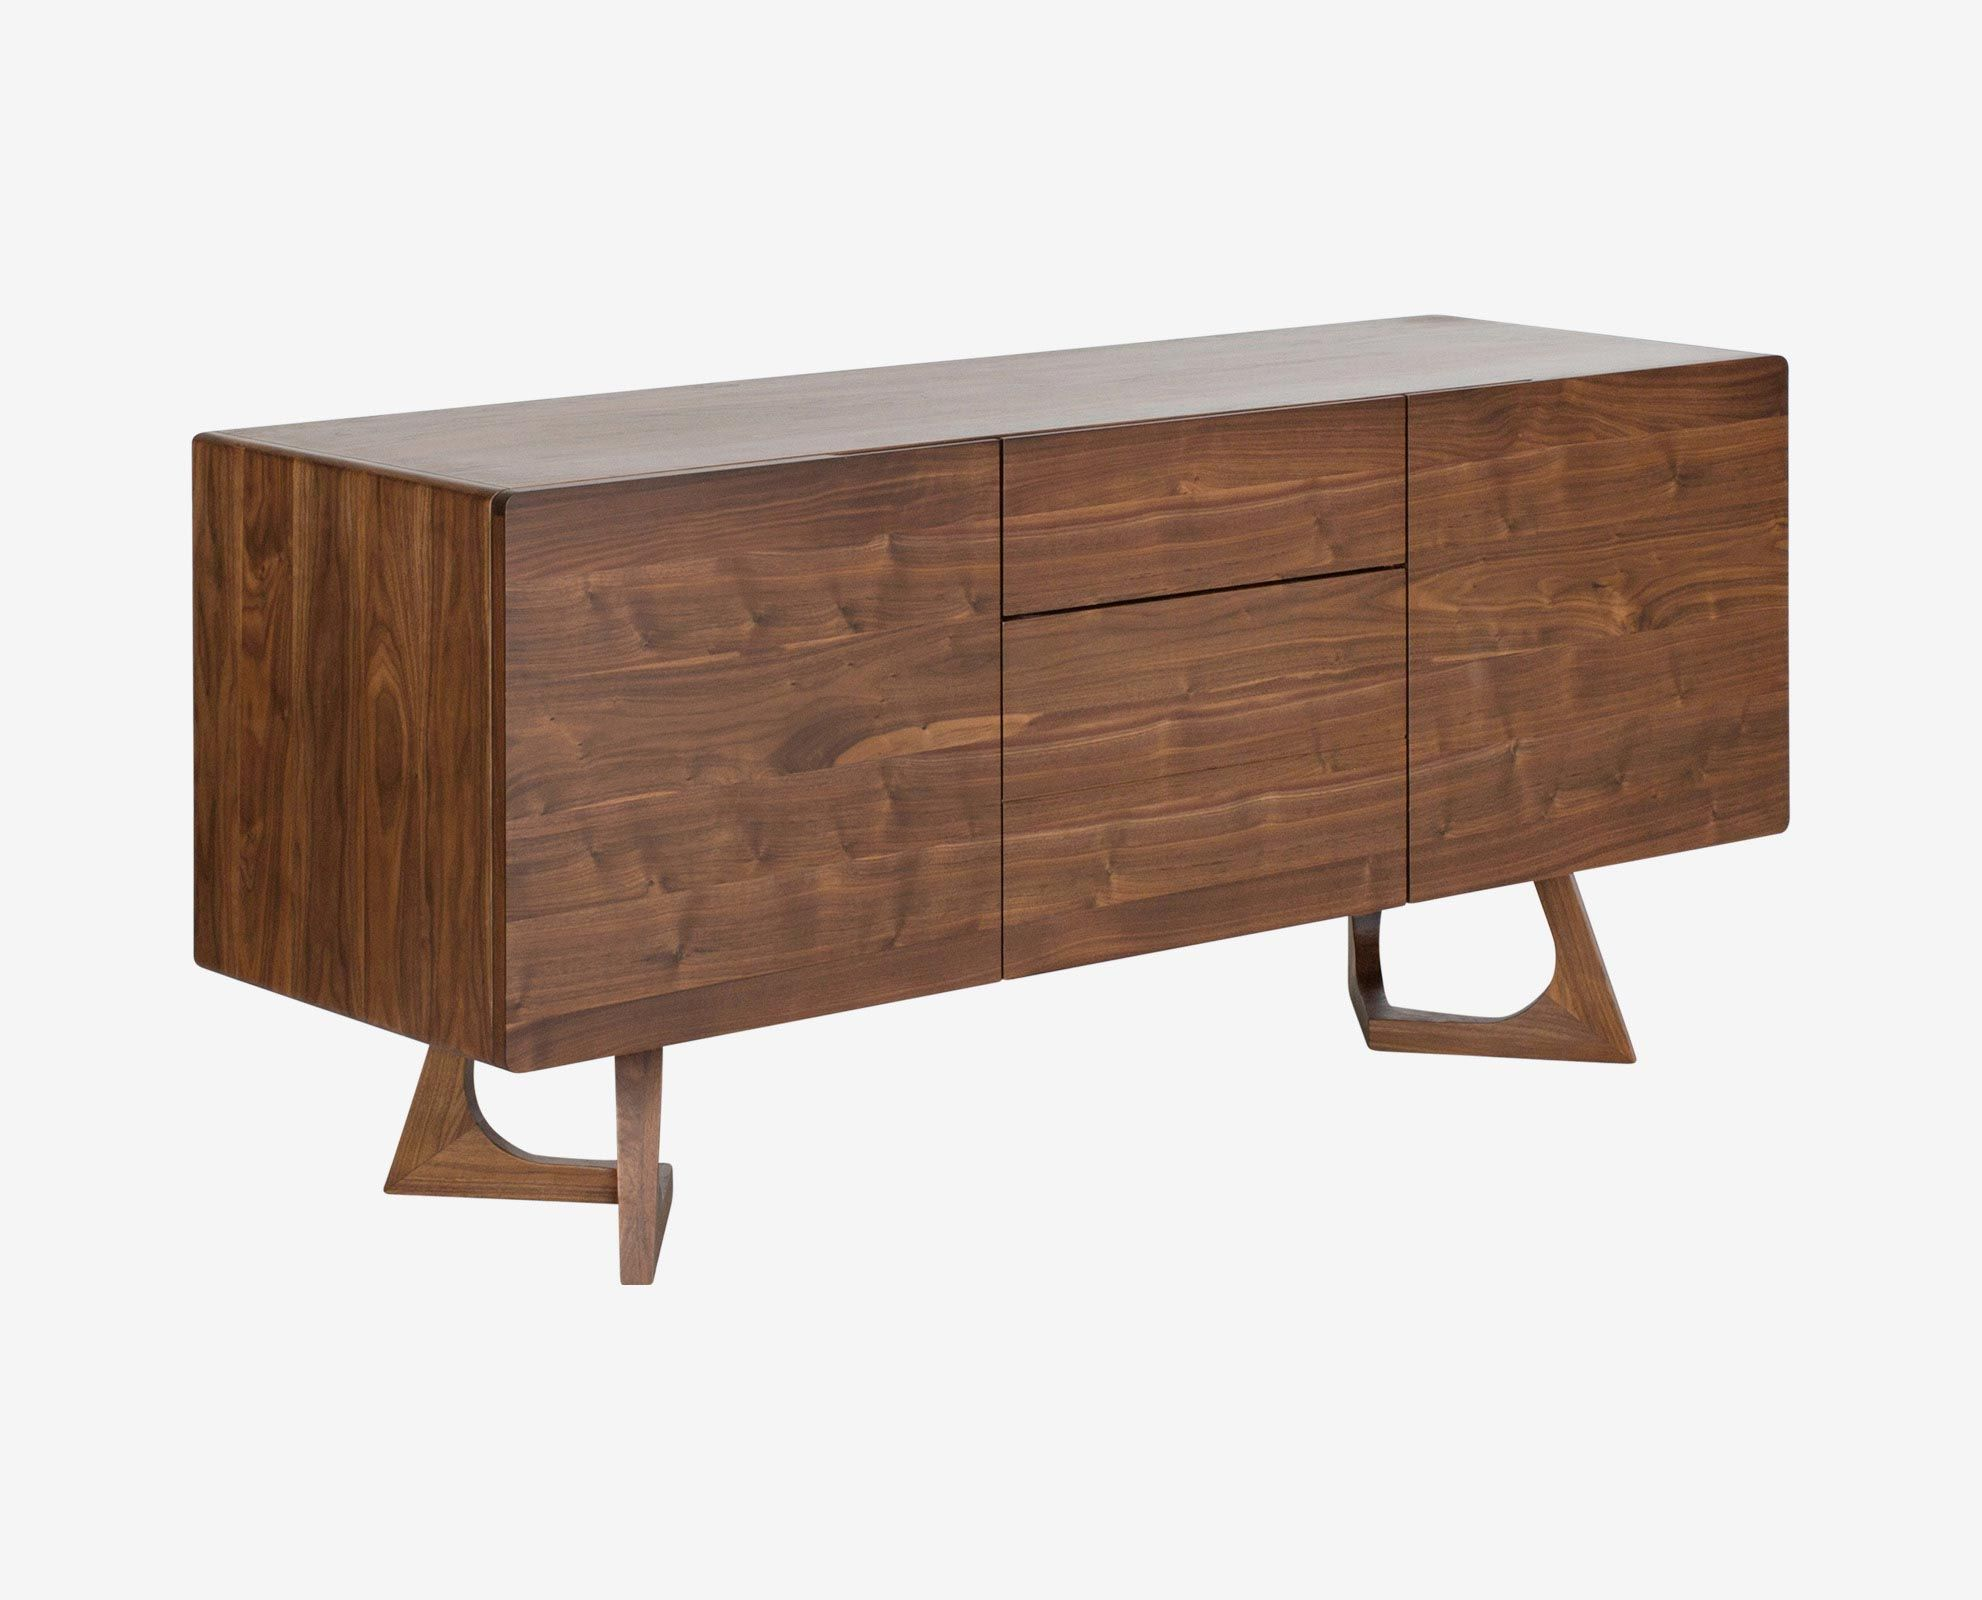 Cress Sideboard Sideboards Scandinavian Designs Scandinavian Dining Room Furniture Dining Room Small Sideboard Scandinavian Design